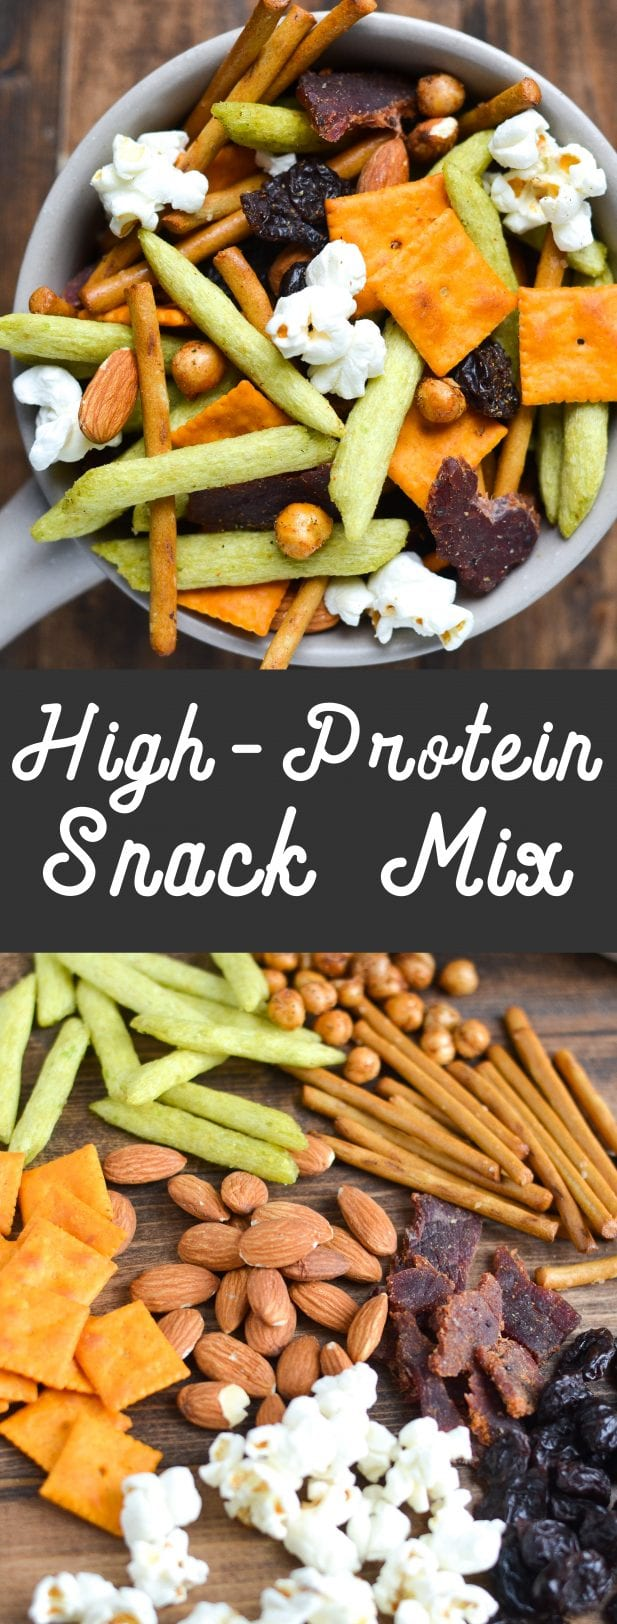 High-Protein Snack Mix